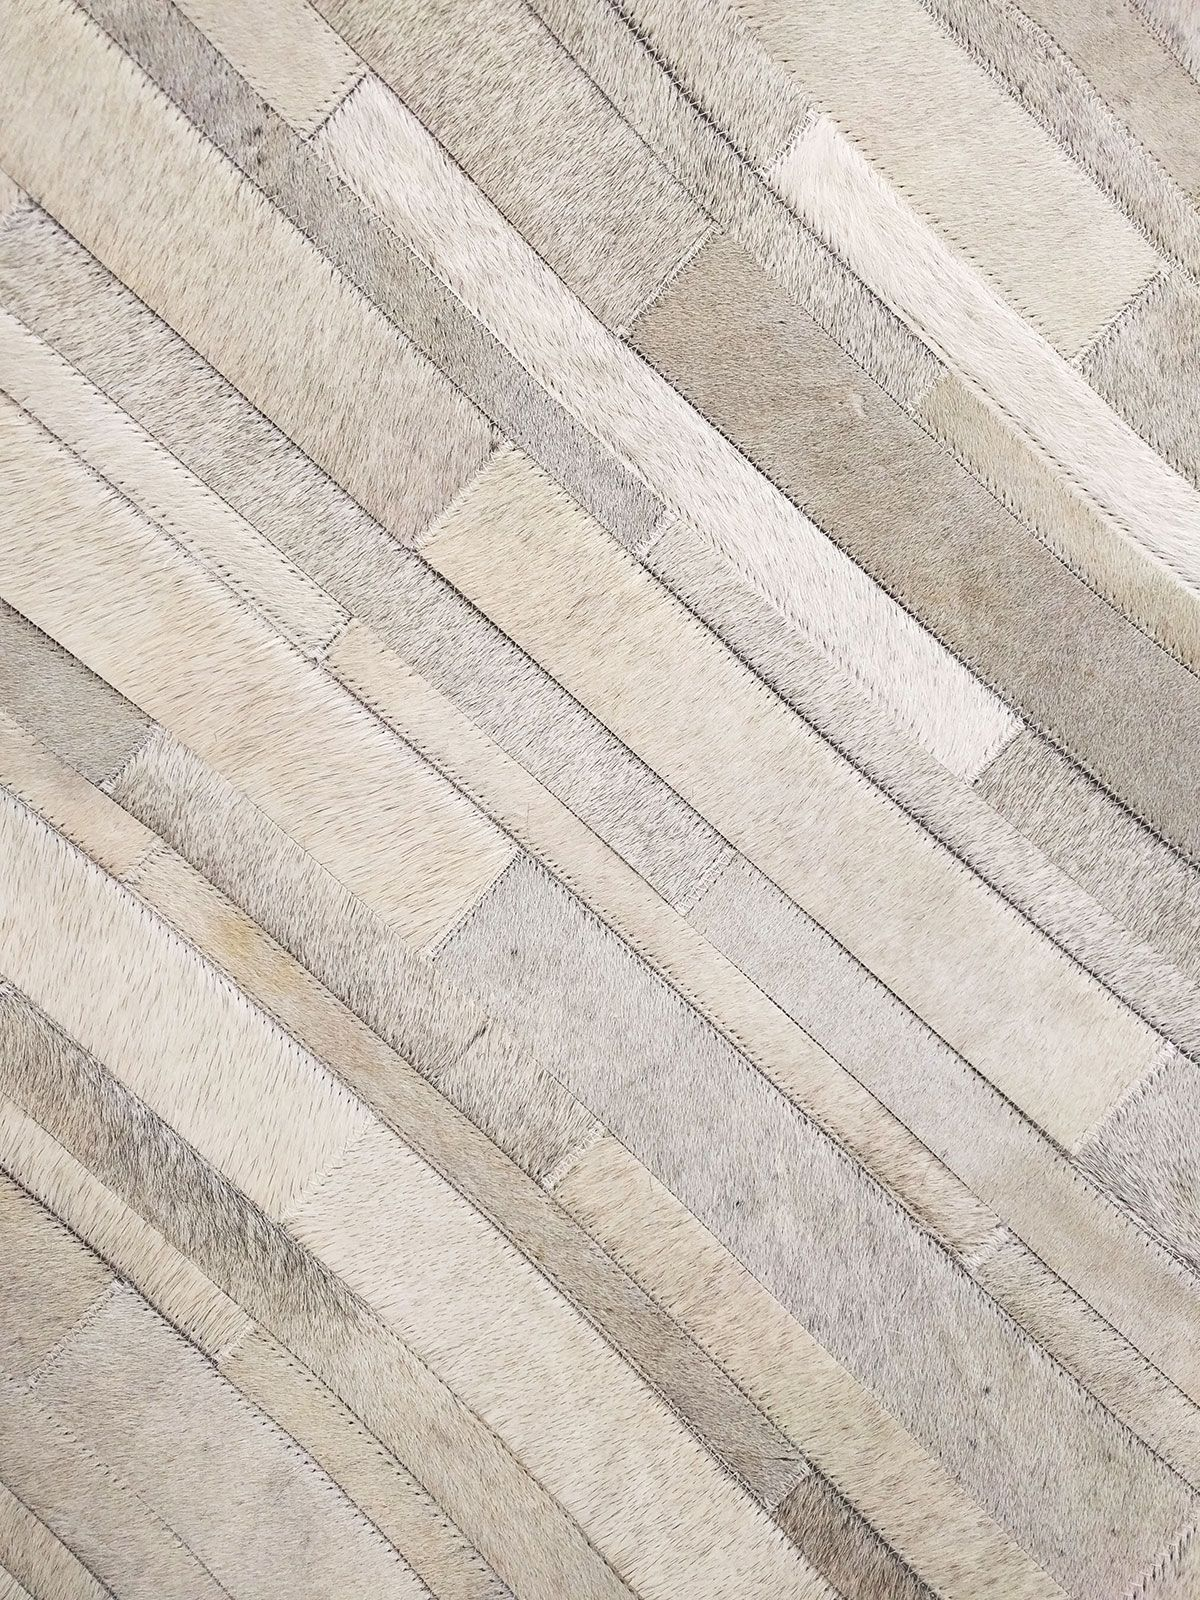 Patchwork Cowhide Rug In Classic White And Gray Stripes Cow Hide Rug Patchwork Cowhide Cowhide Patch Rug